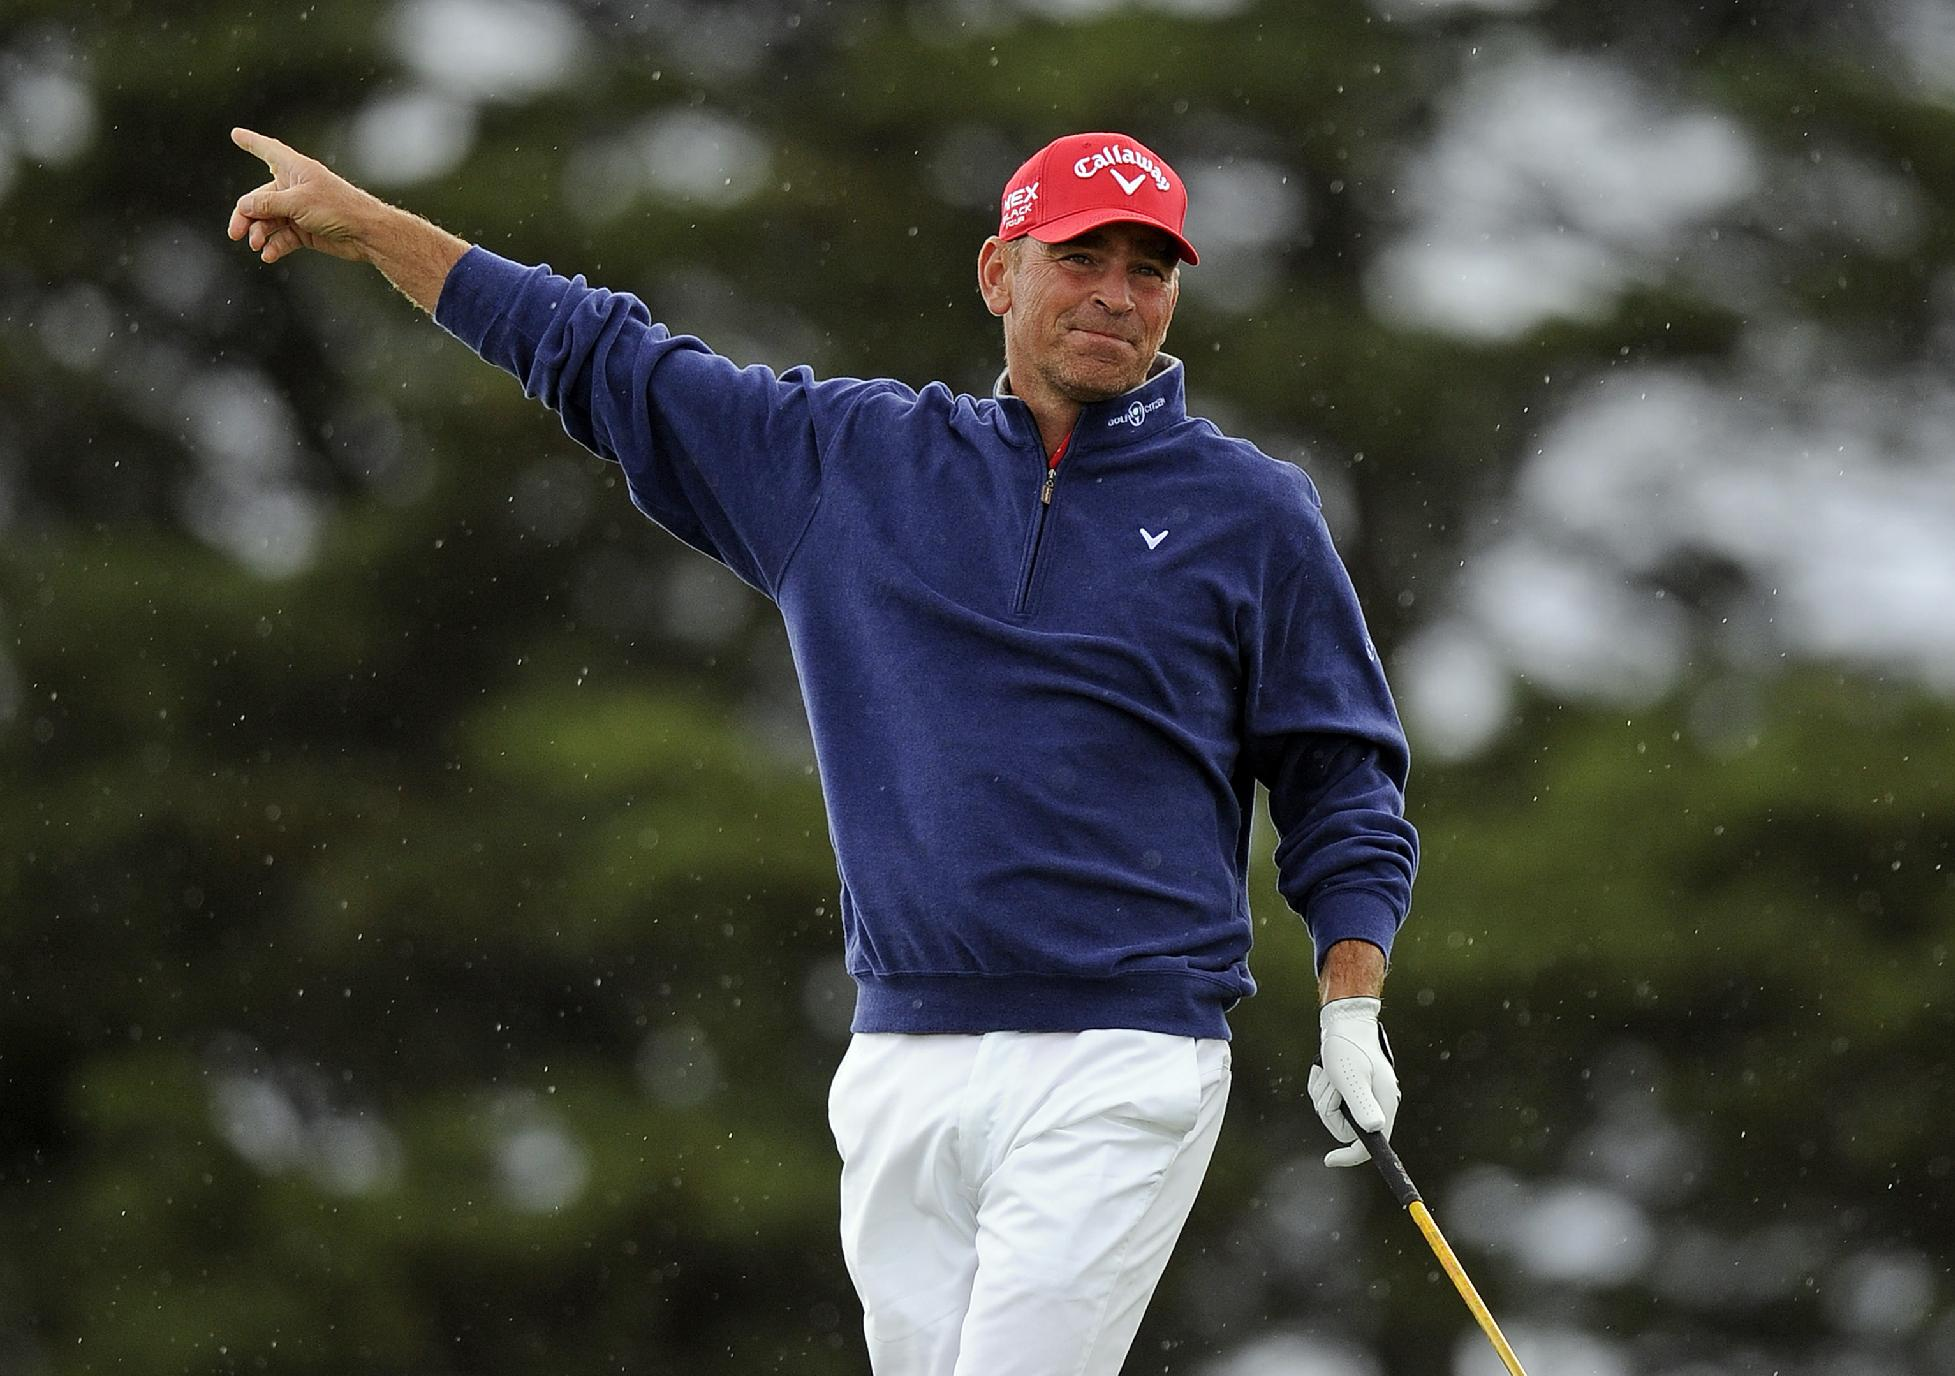 Thomas Bjorn of Denmark gestures after hitting his approach shot into the rough on the second hole during the final round of the World Cup of Golf at Royal Melbourne Golf Course in Australia, Sunday, Nov. 24, 2013